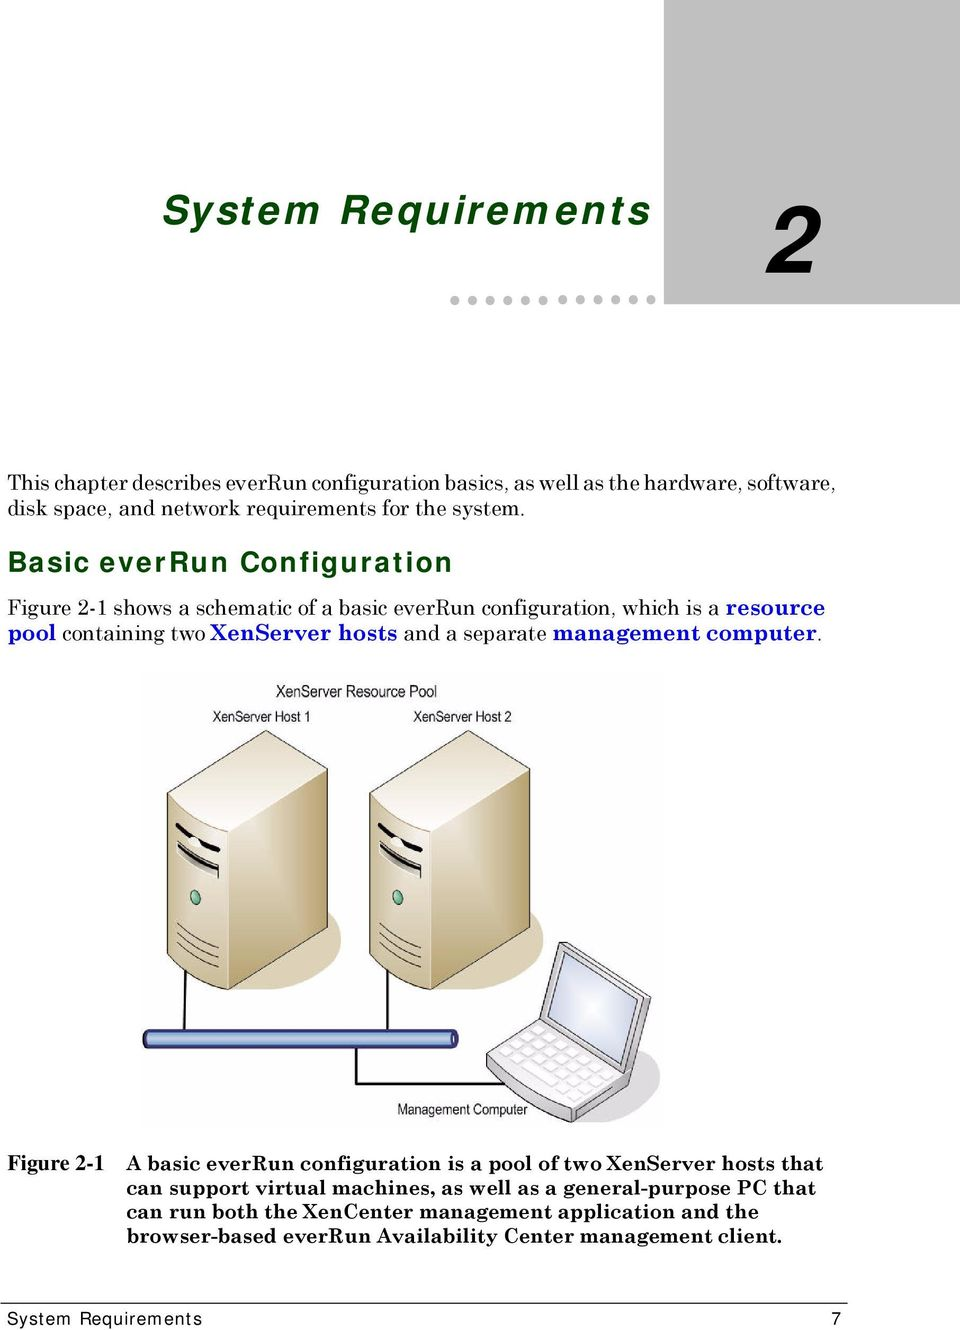 Basic everrun Configuration Figure 2-1 shows a schematic of a basic everrun configuration, which is a resource pool containing two XenServer hosts and a